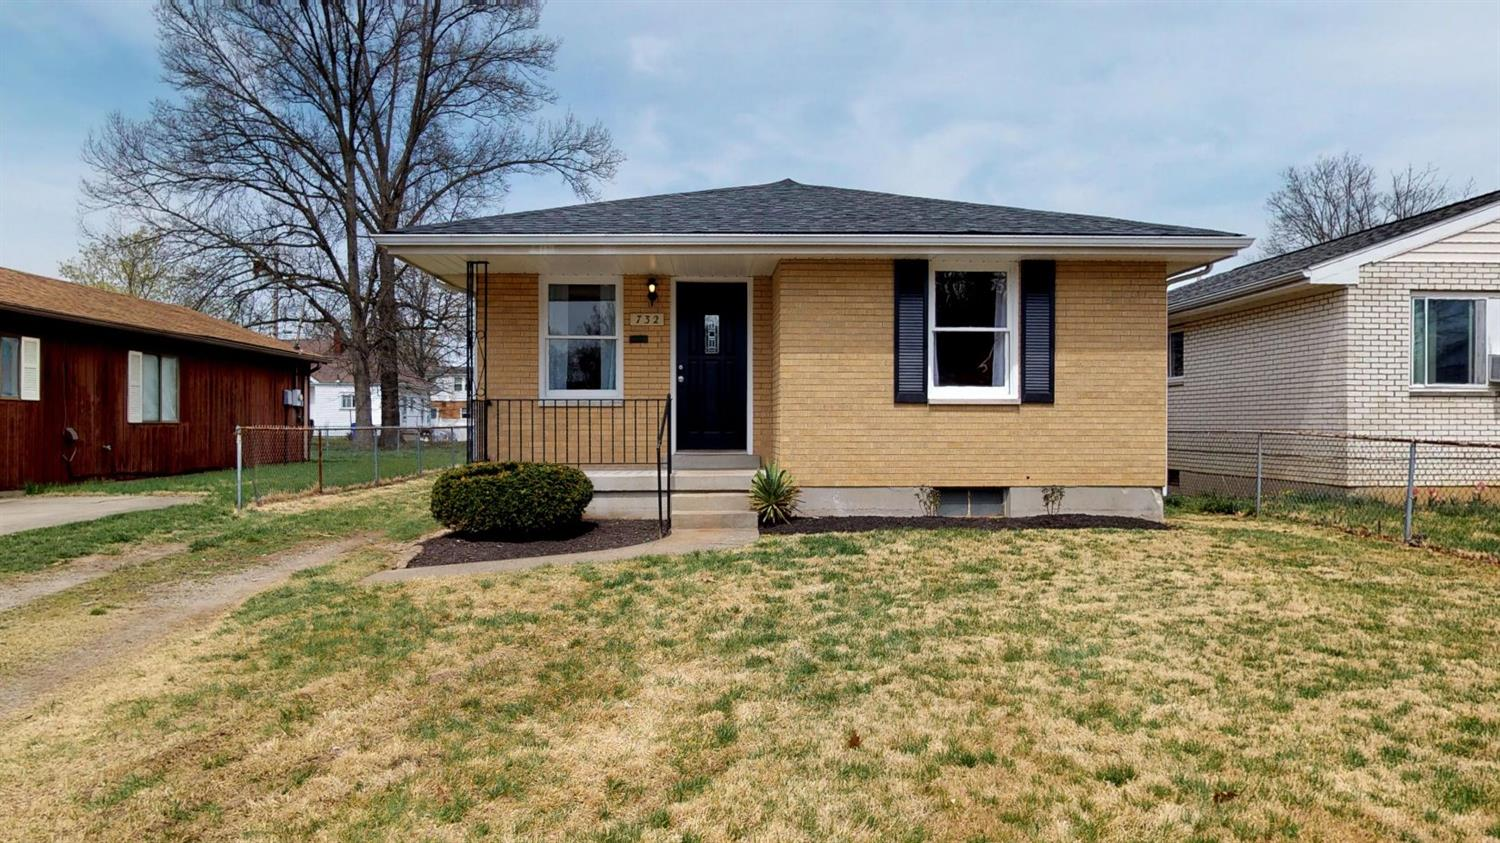 Photo 2 for 732 St Clair Ave Lindenwald, OH 45015